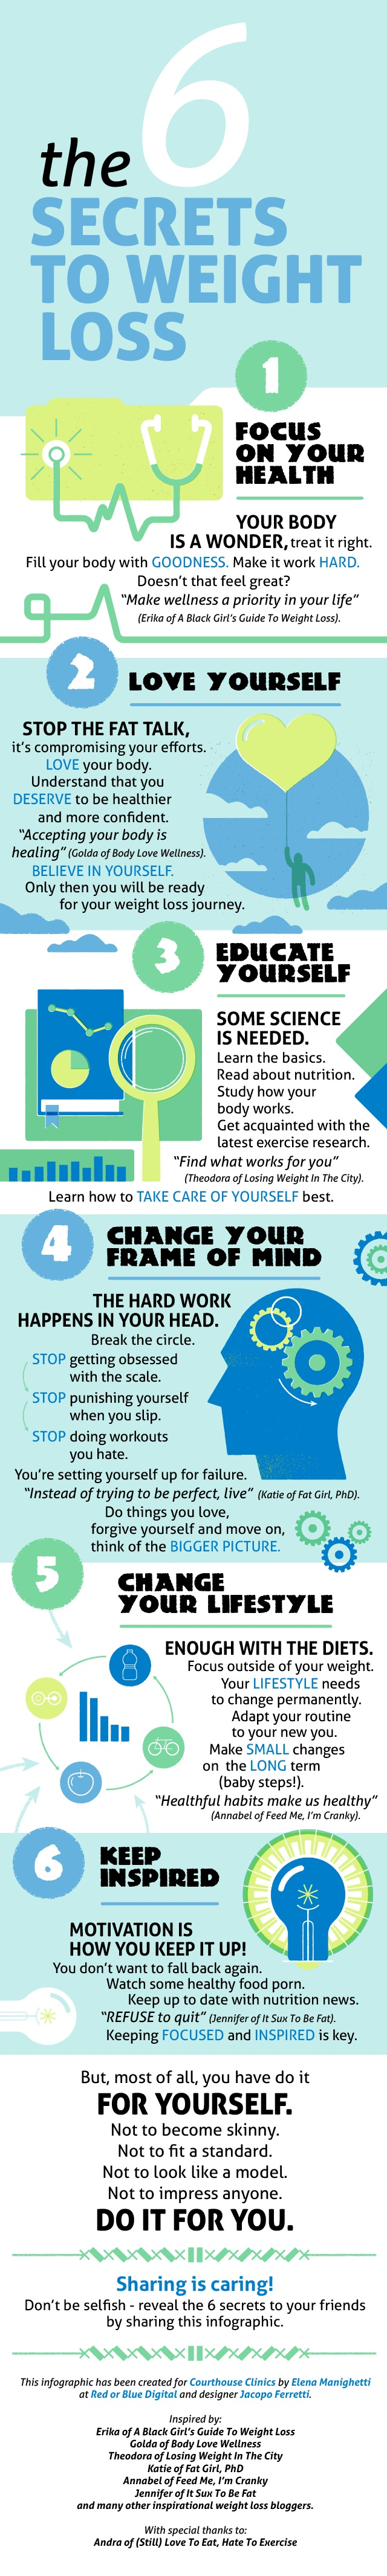 The 6 Secrets To Weight Loss - Infographic